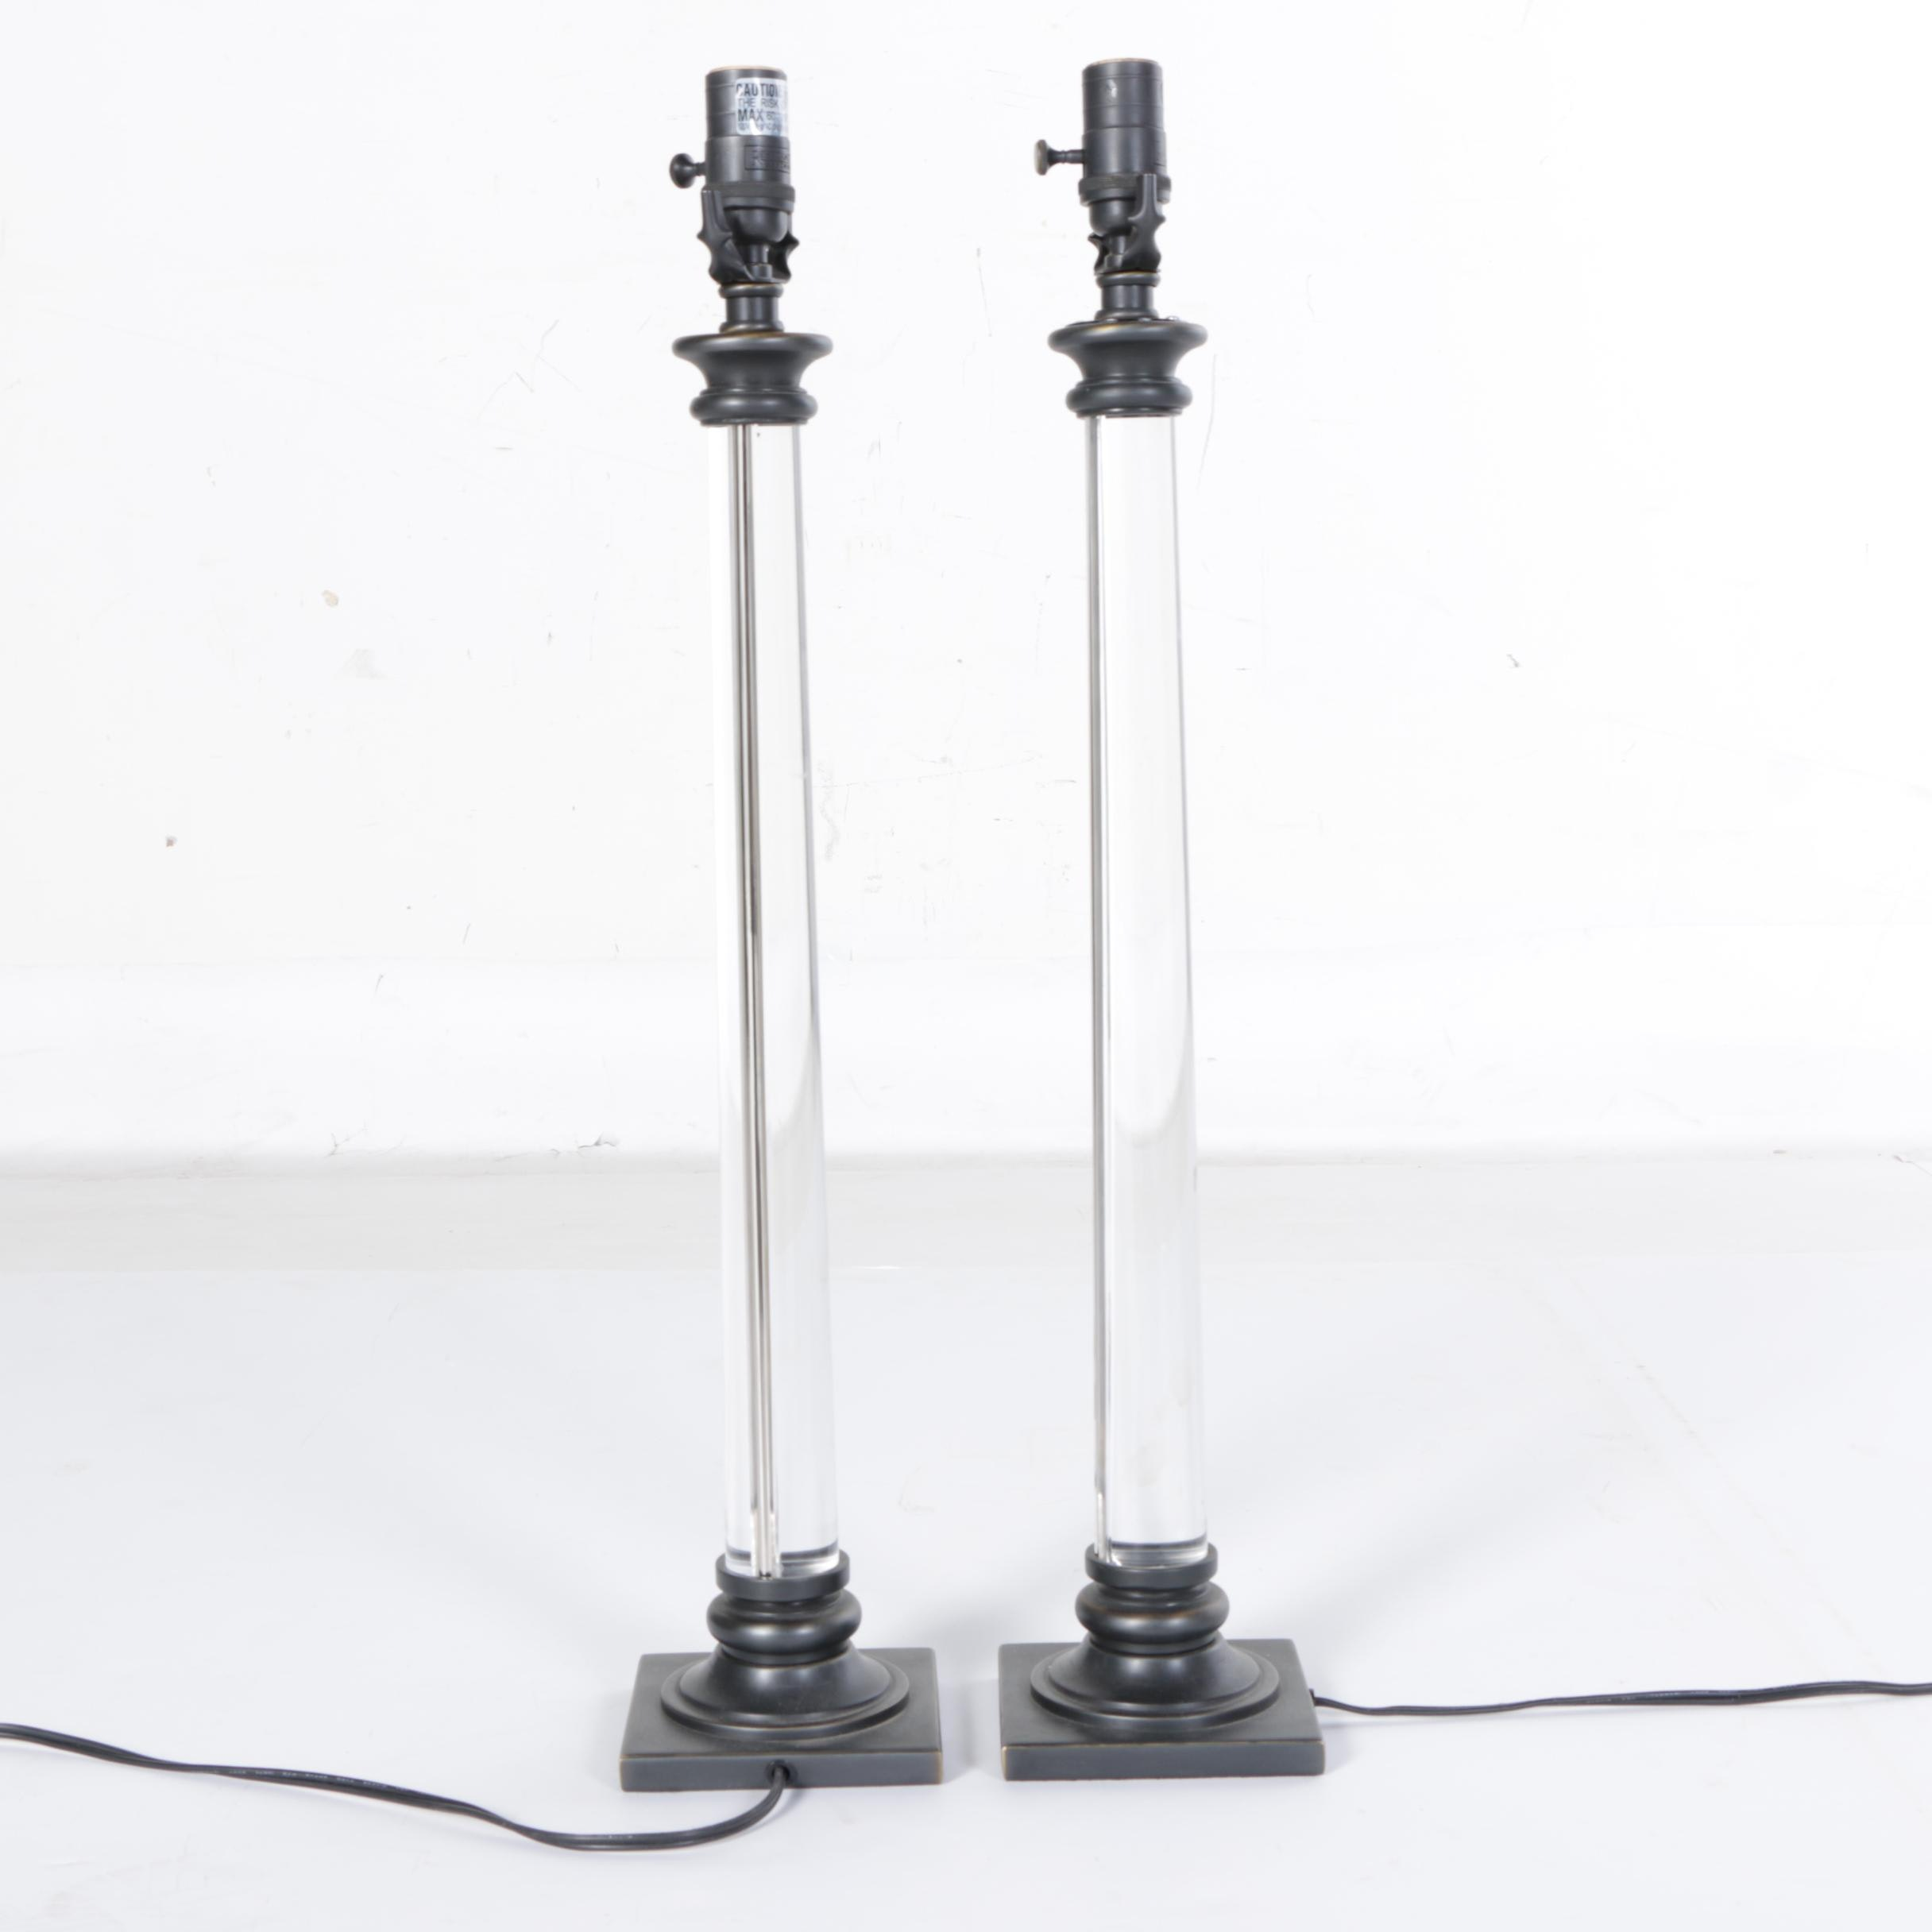 Restoration Hardware Candlestick L&s  sc 1 st  EBTH.com & Vintage Floor Lamps | Retro Table Lamps | Antique Lighting in Home ...